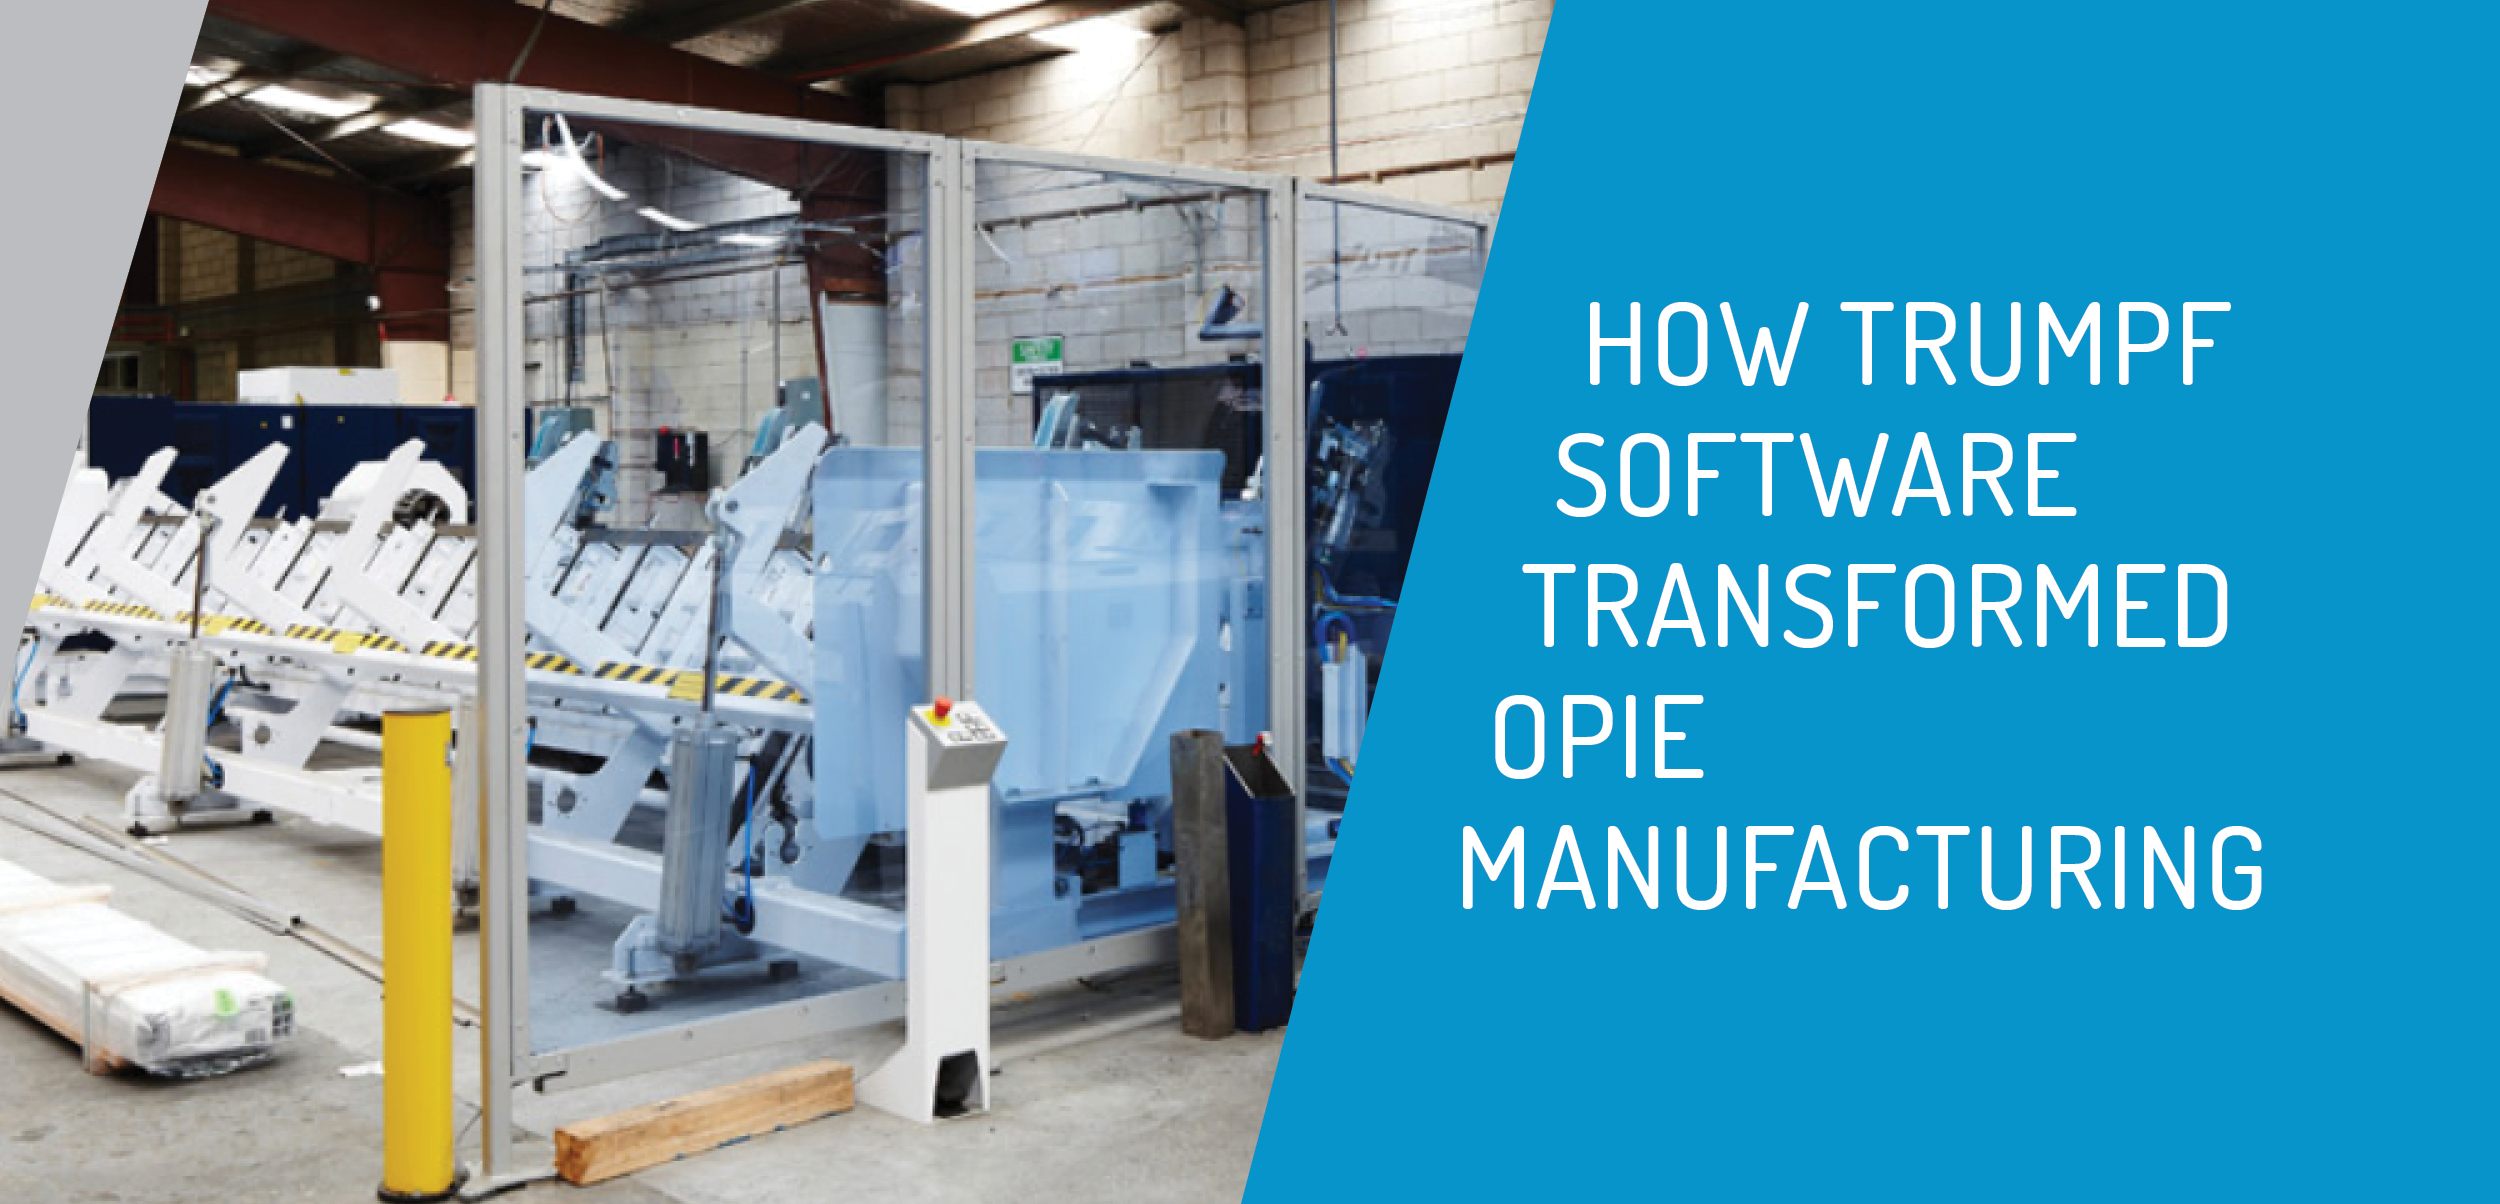 Opie Group and TRUMPF Software